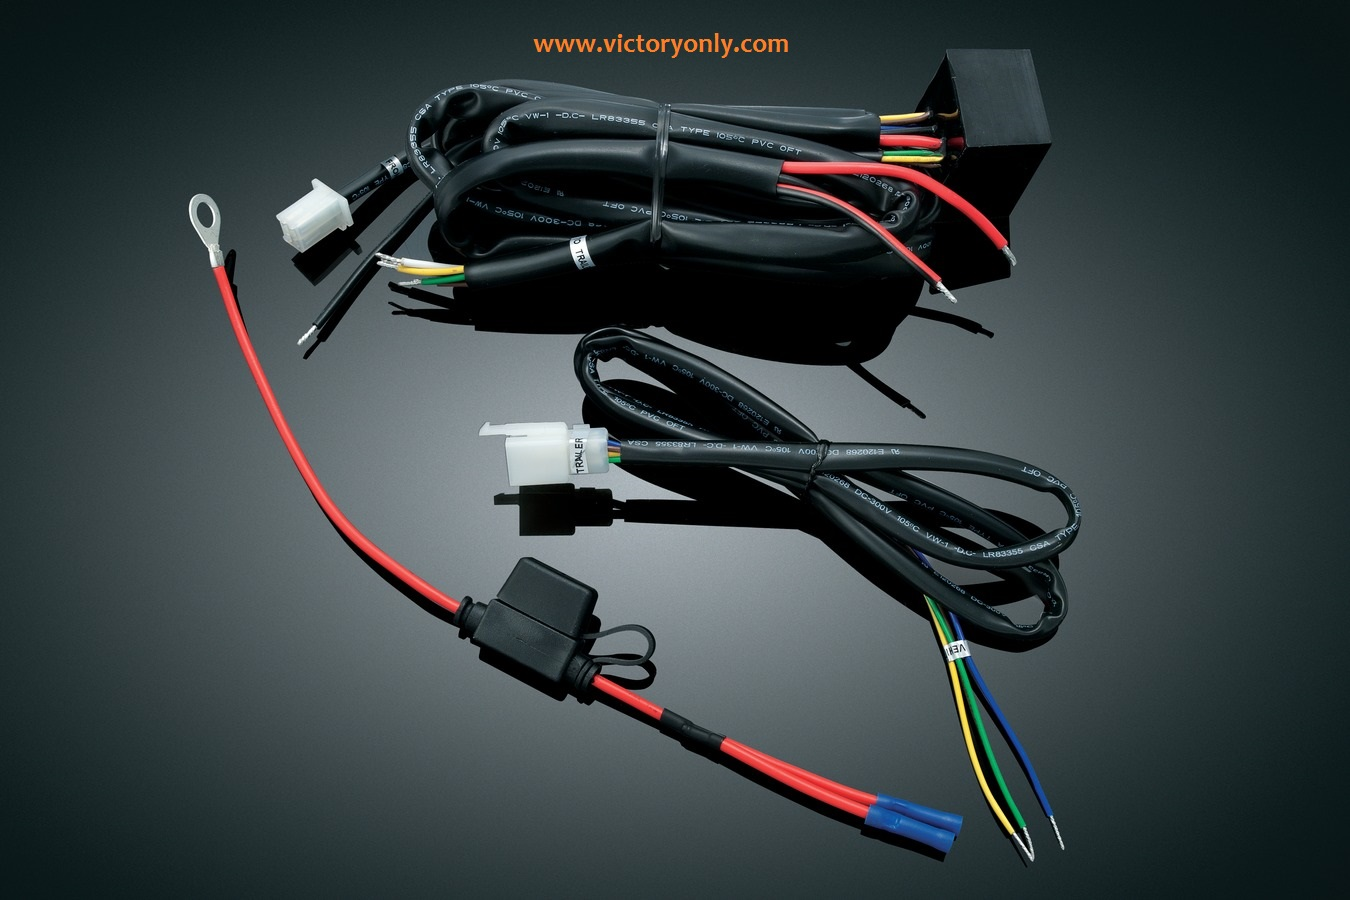 16997_kur_7671_tt_u_13_1350x900_RGB_72DPI trailer wiring harnesses for victory motorcycle Universal Wiring Harness Diagram at edmiracle.co